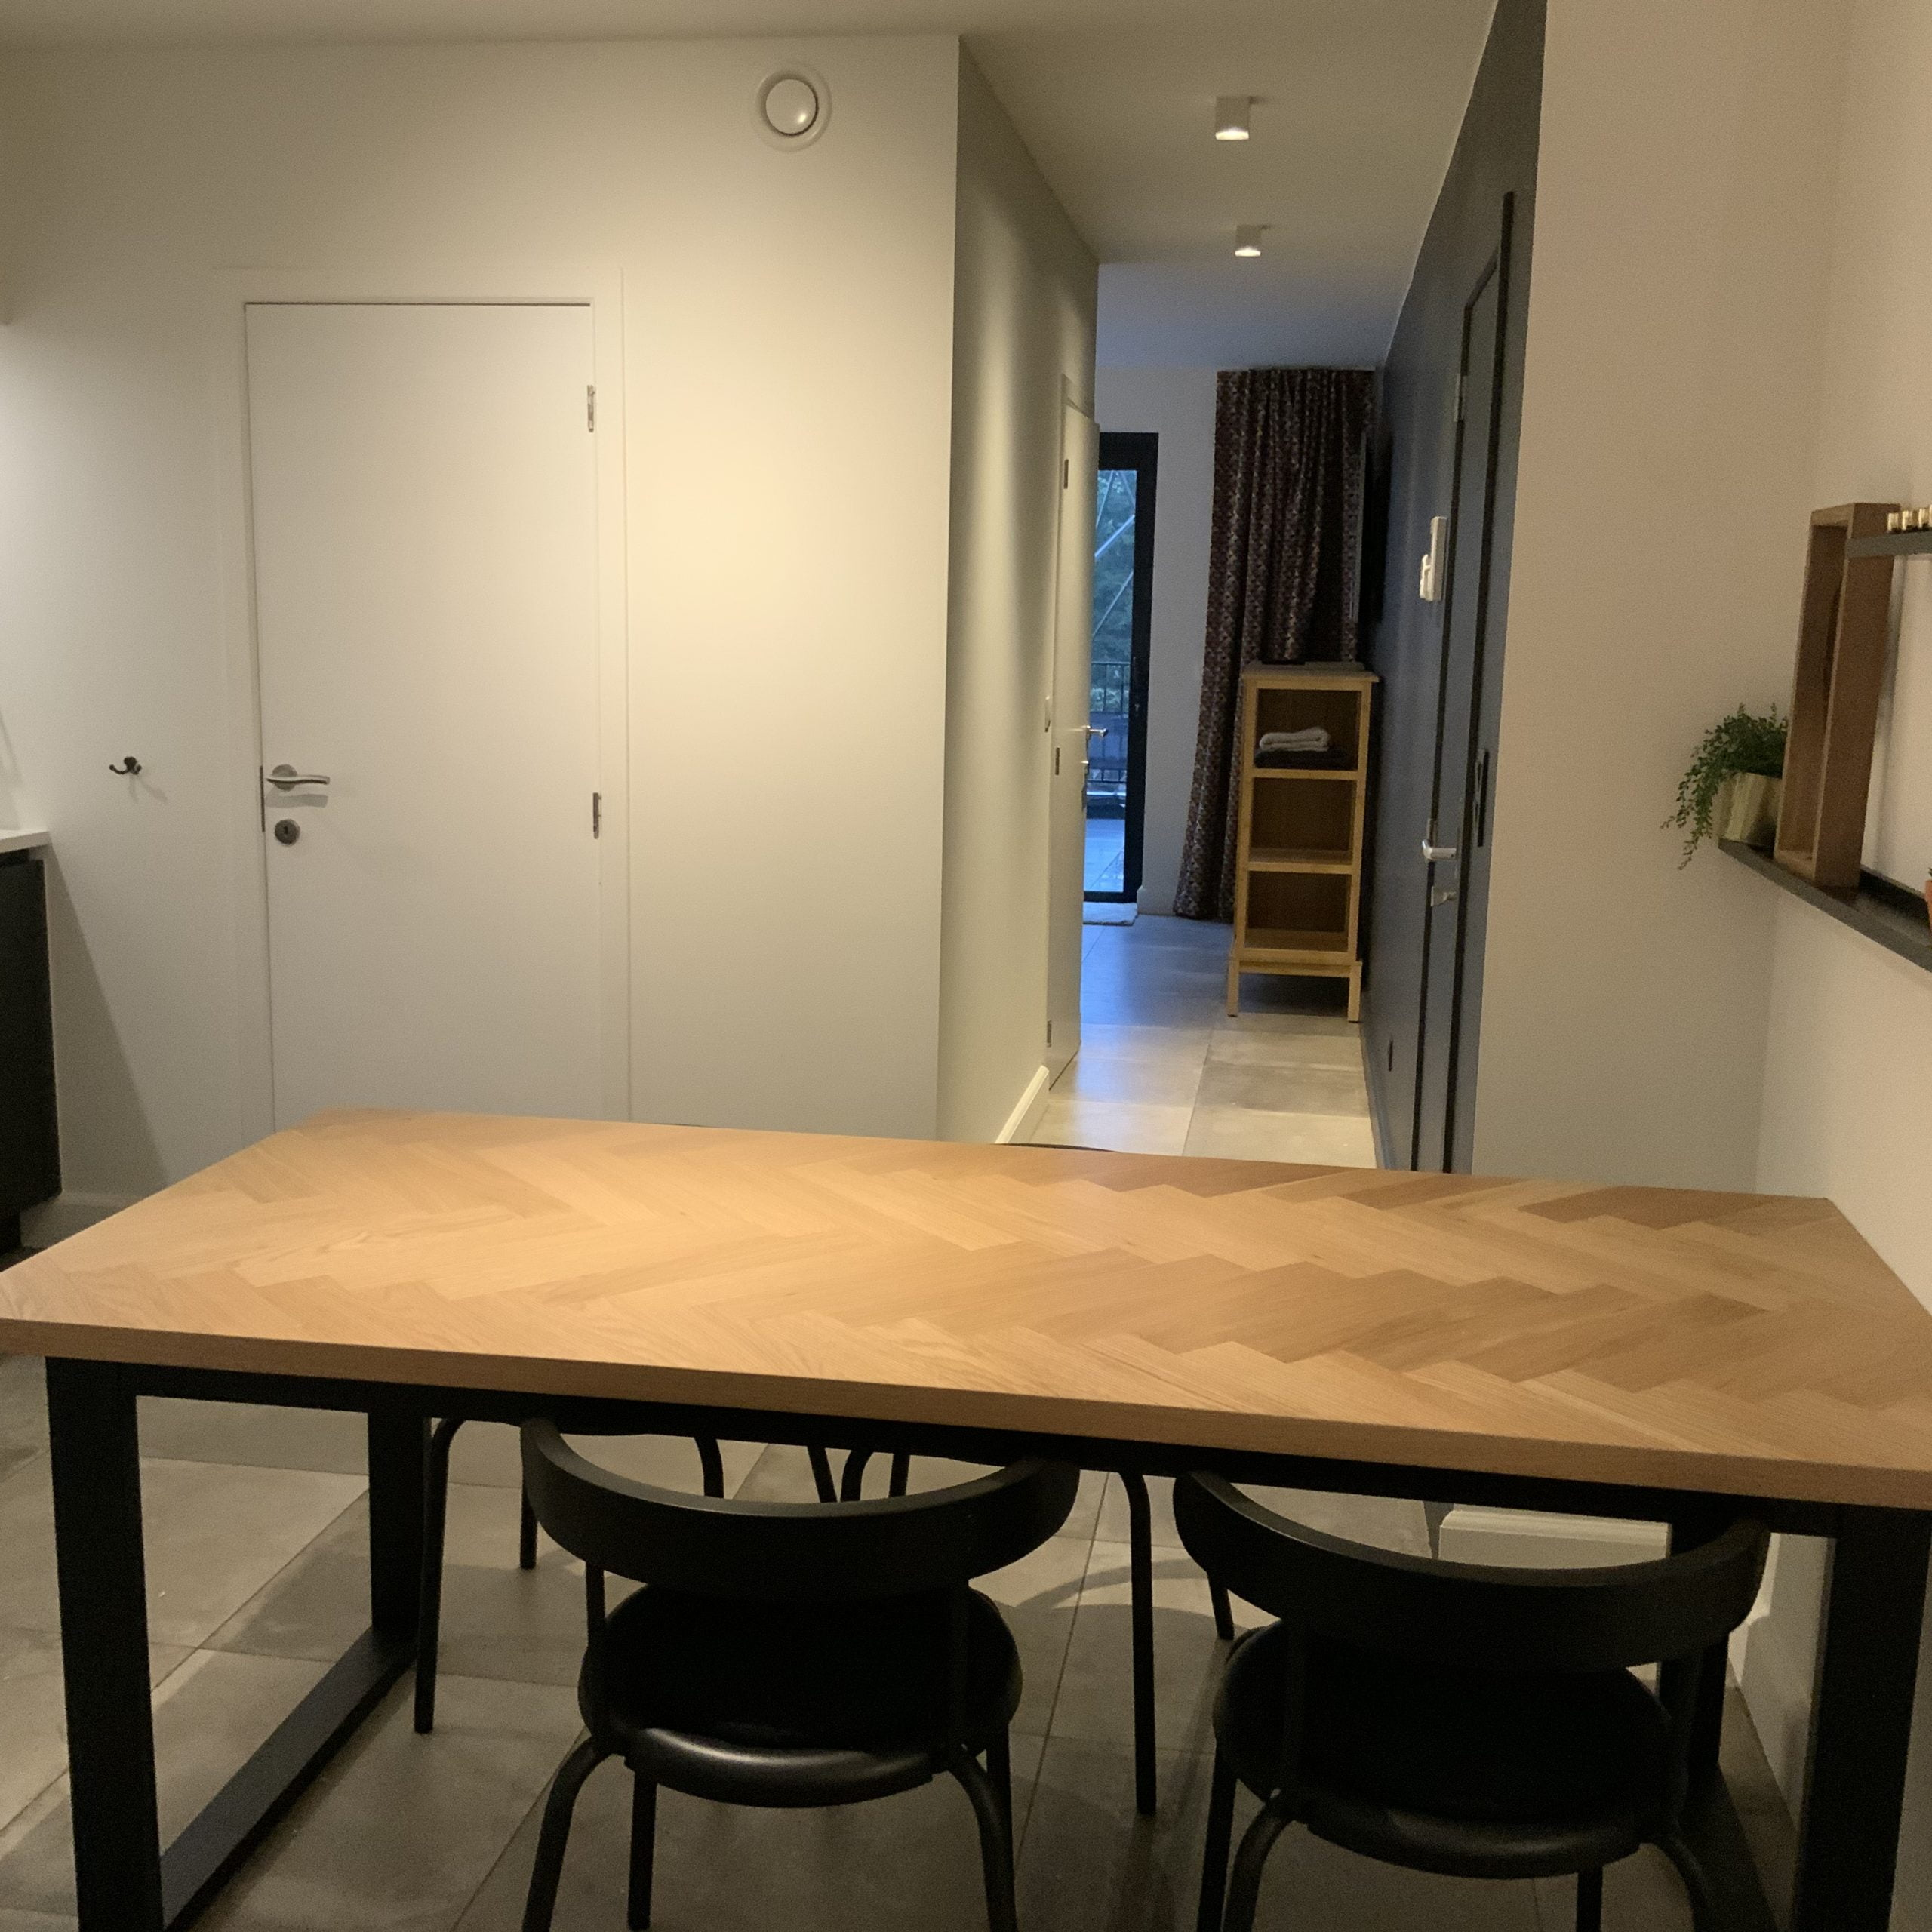 Accommodation for expats near the Port of Antwerp